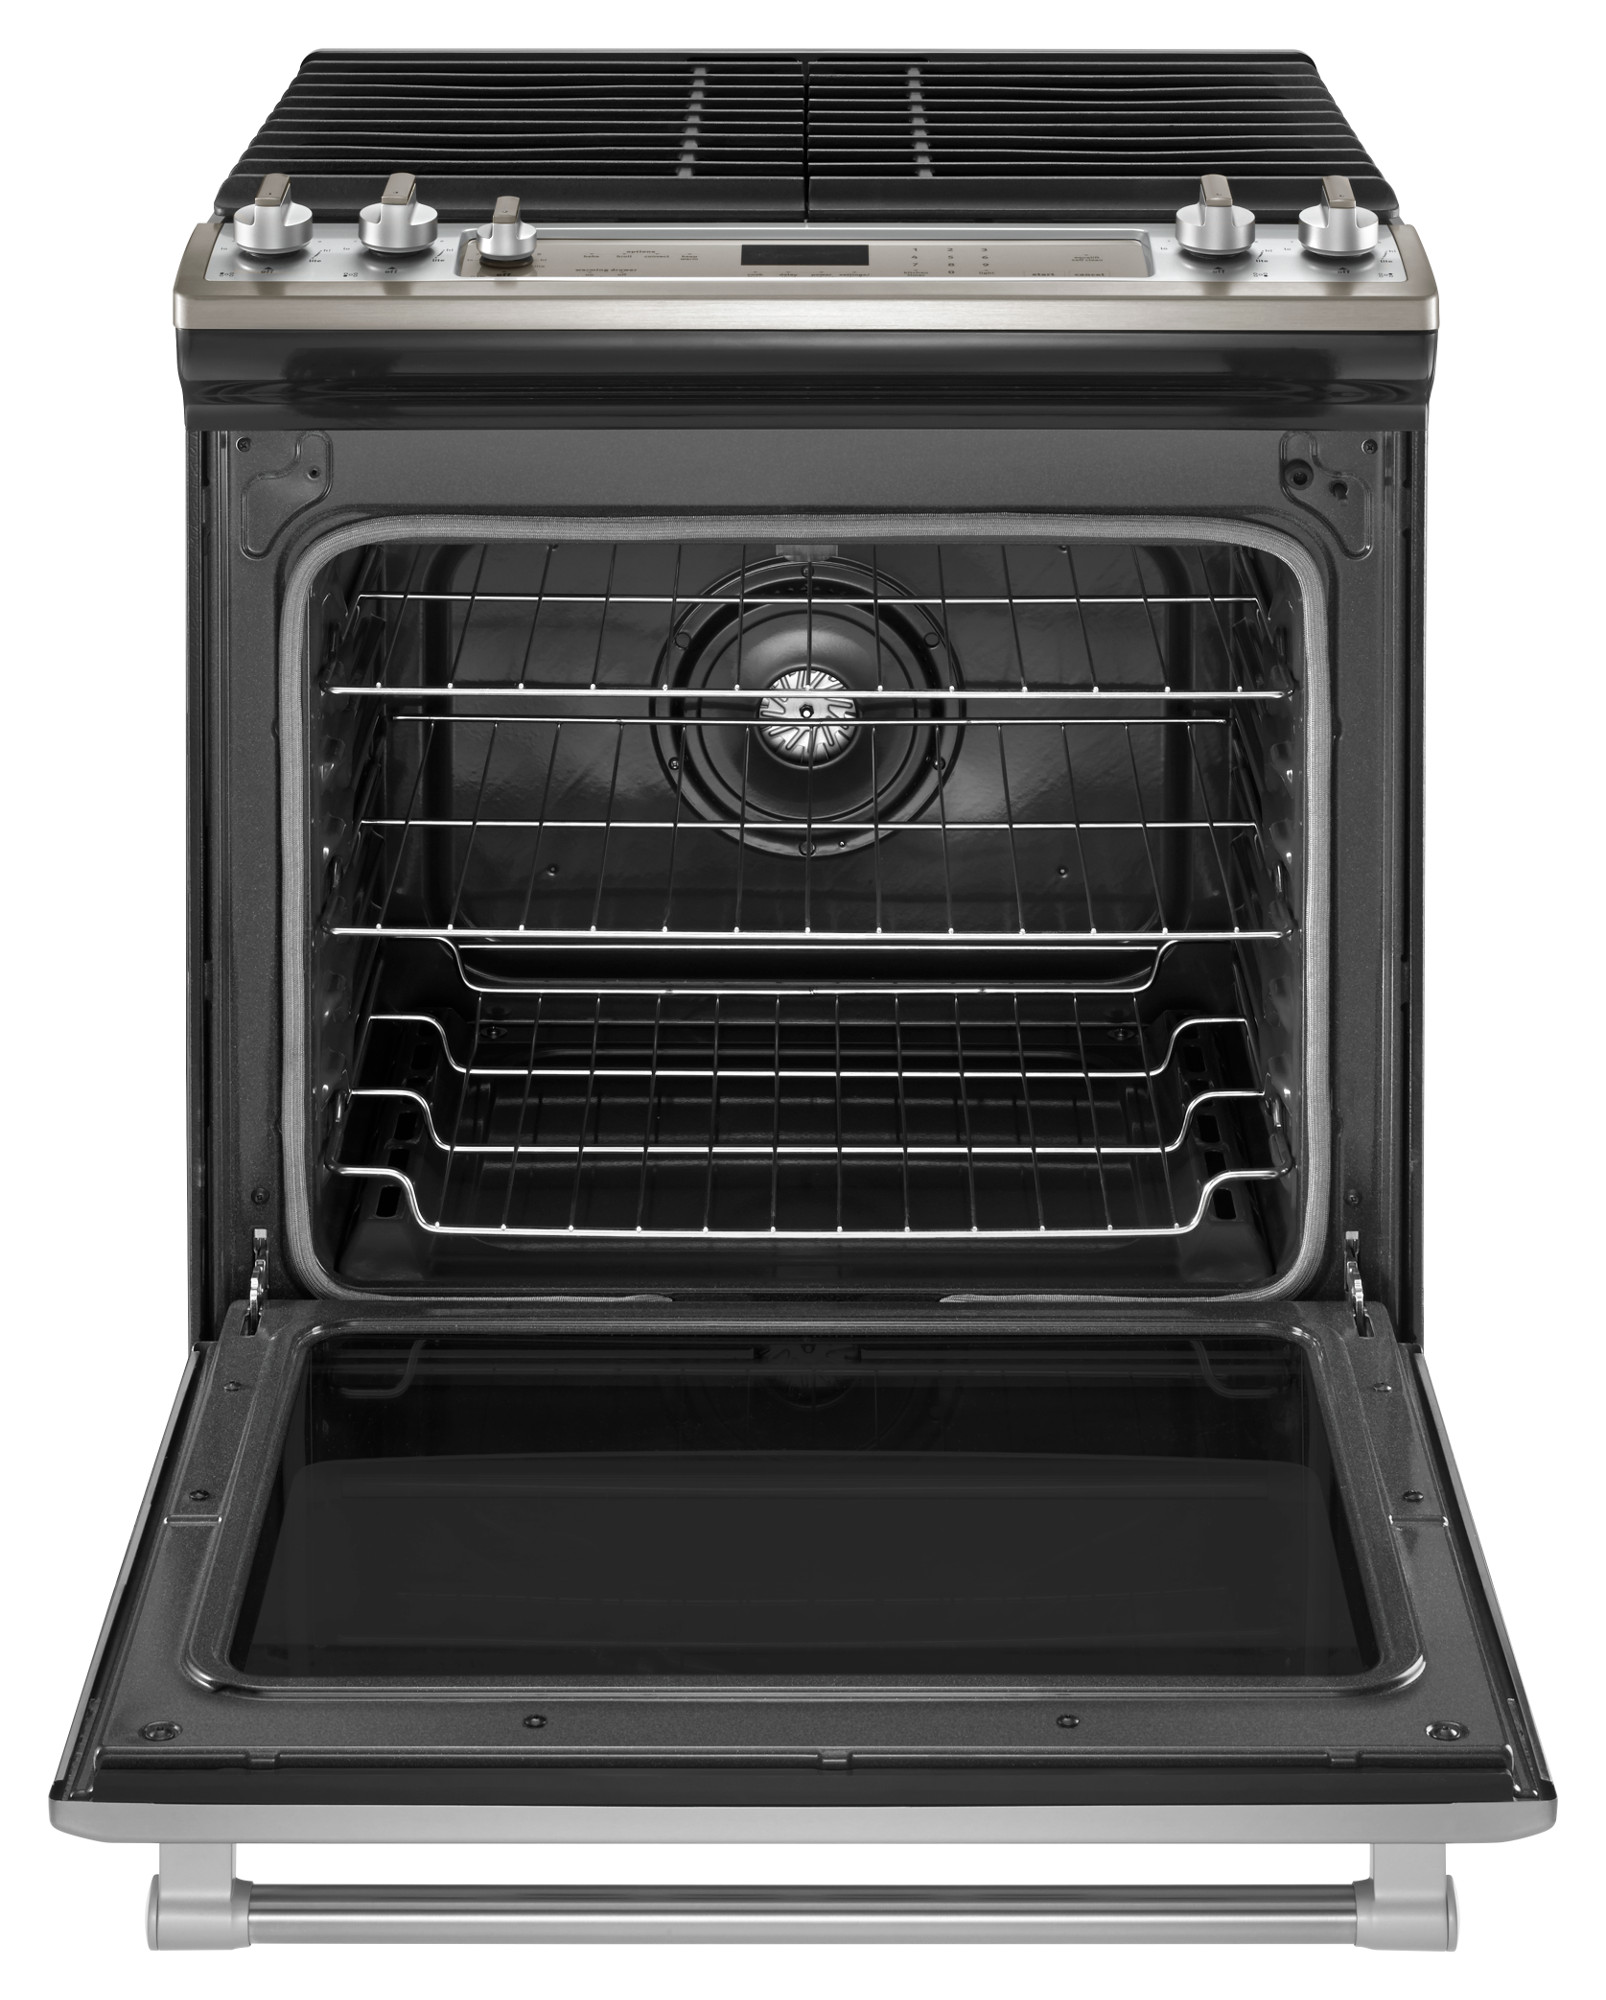 Maytag MGS8880DS 5.8 cu. ft. Slide-in Gas Range - Stainless Steel